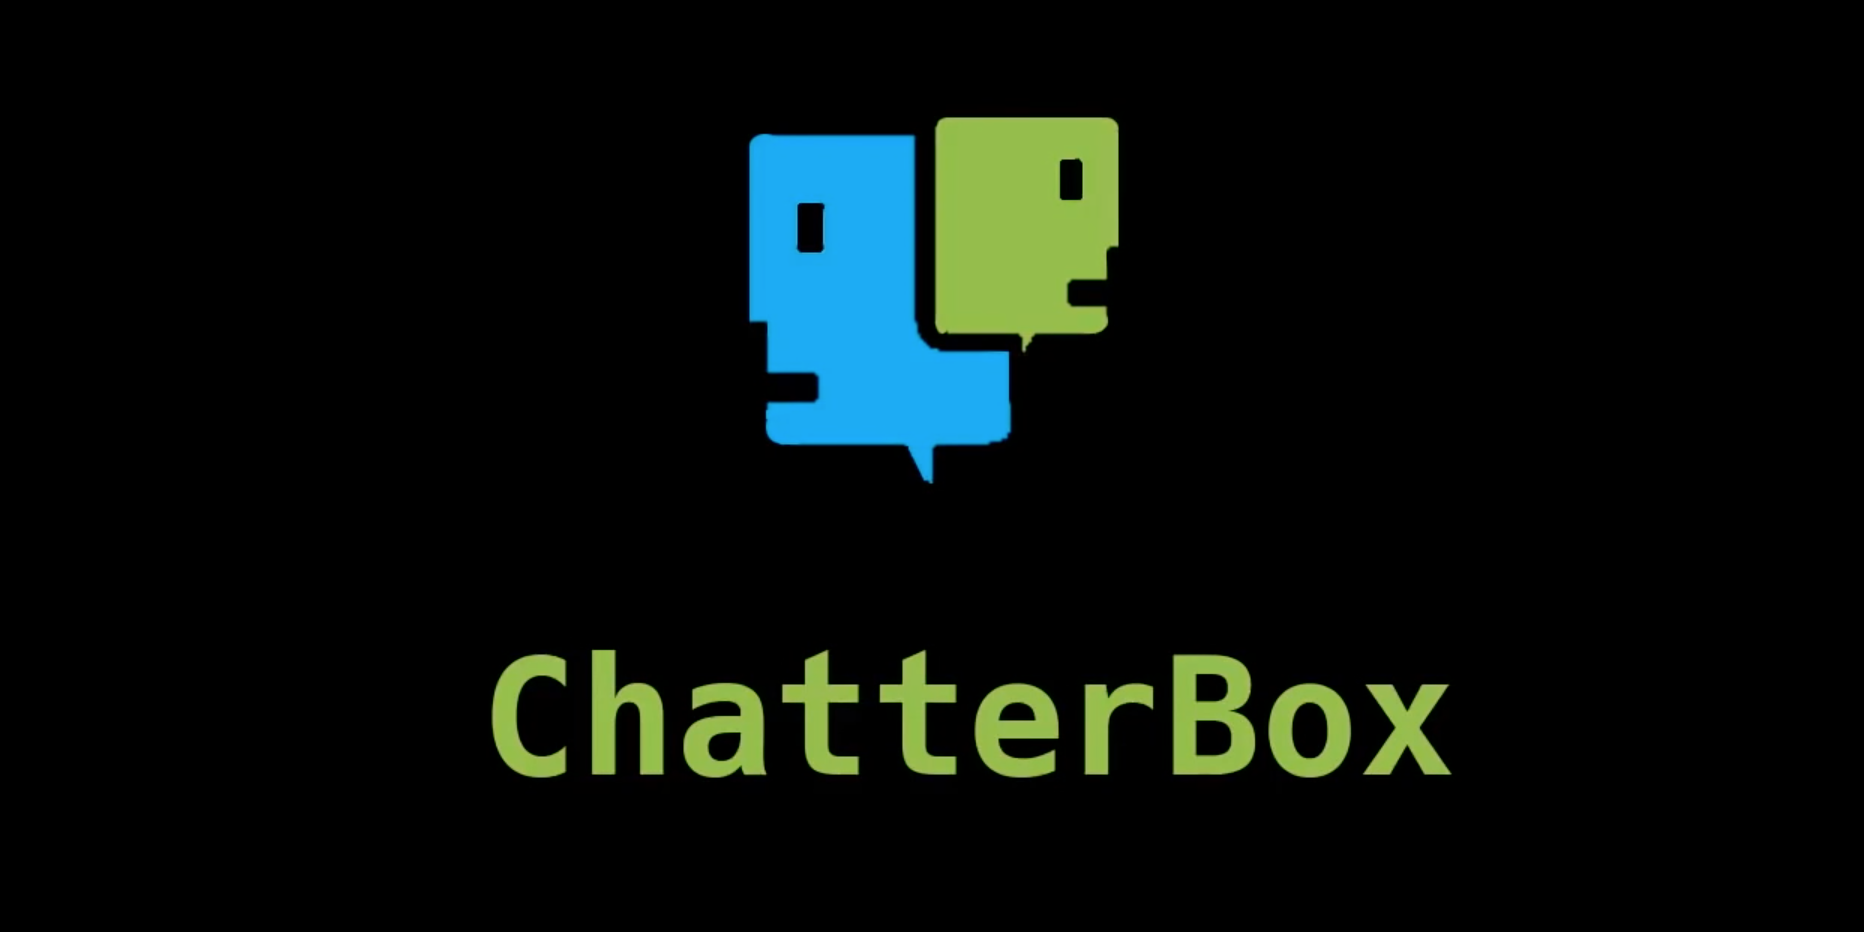 Chatterbox — A Remote Buffer Overflow HackTheBox Walk-through